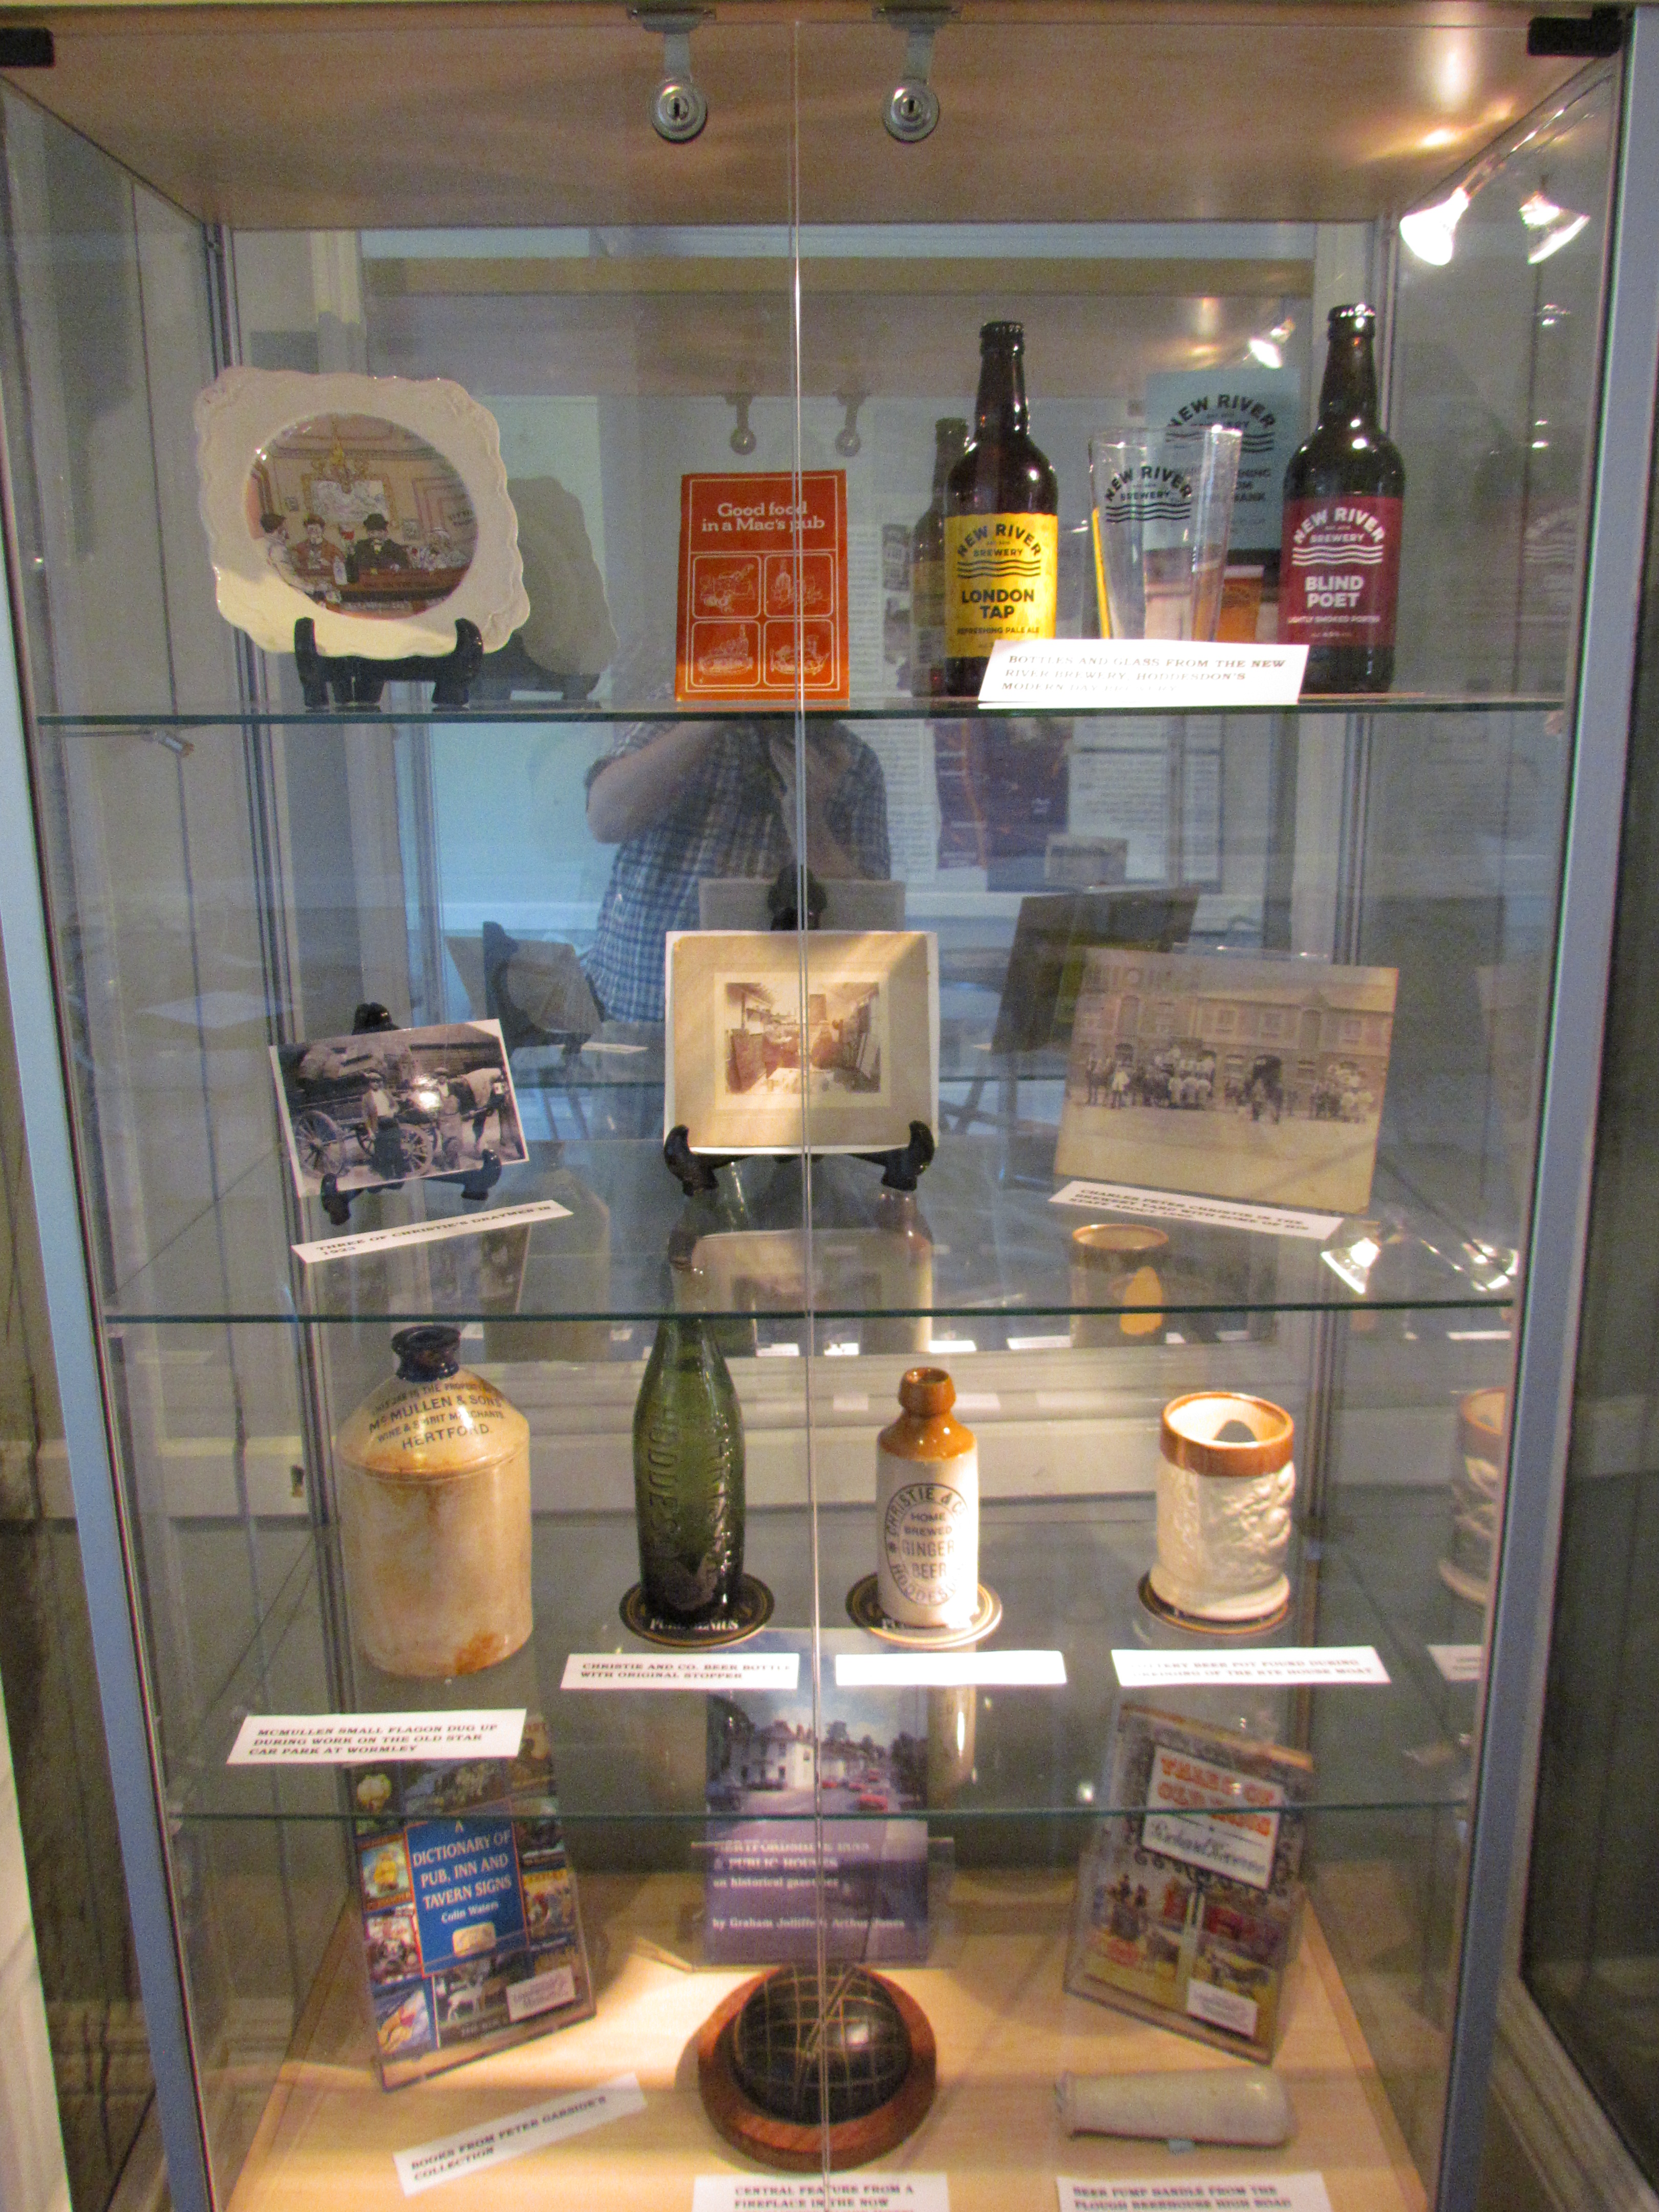 The Friends of Lowewood display cabinet